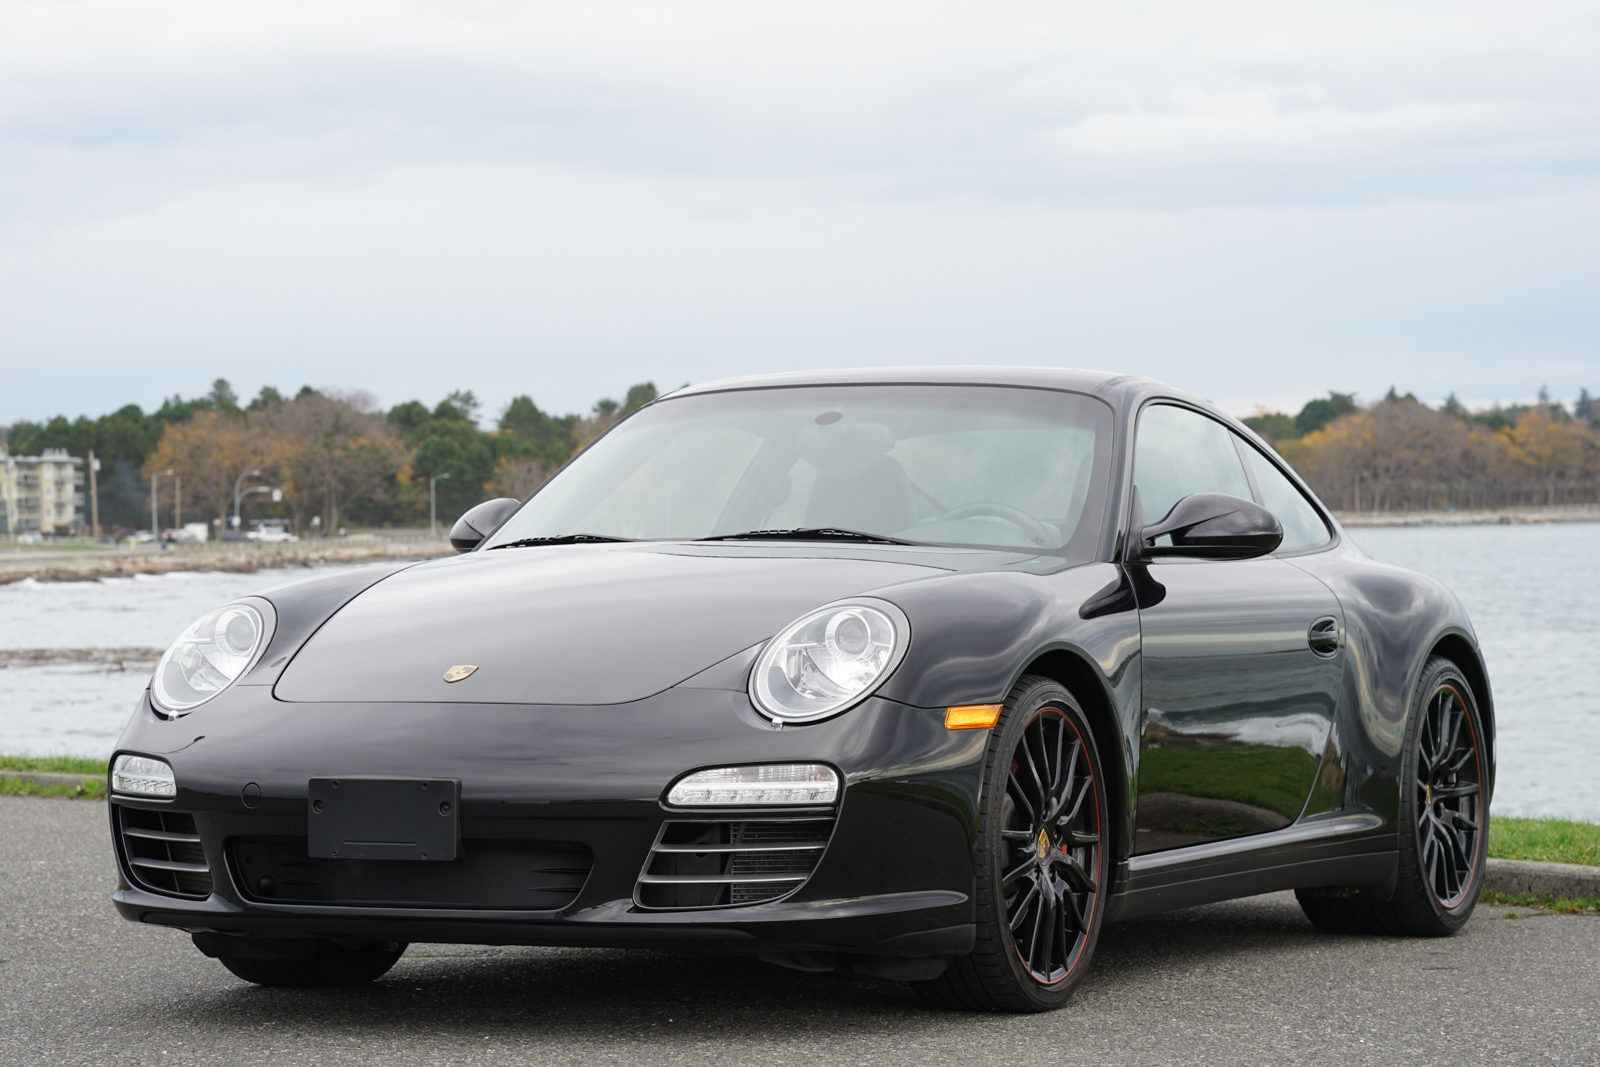 2009 Porsche 911 Carrera 4S for sale